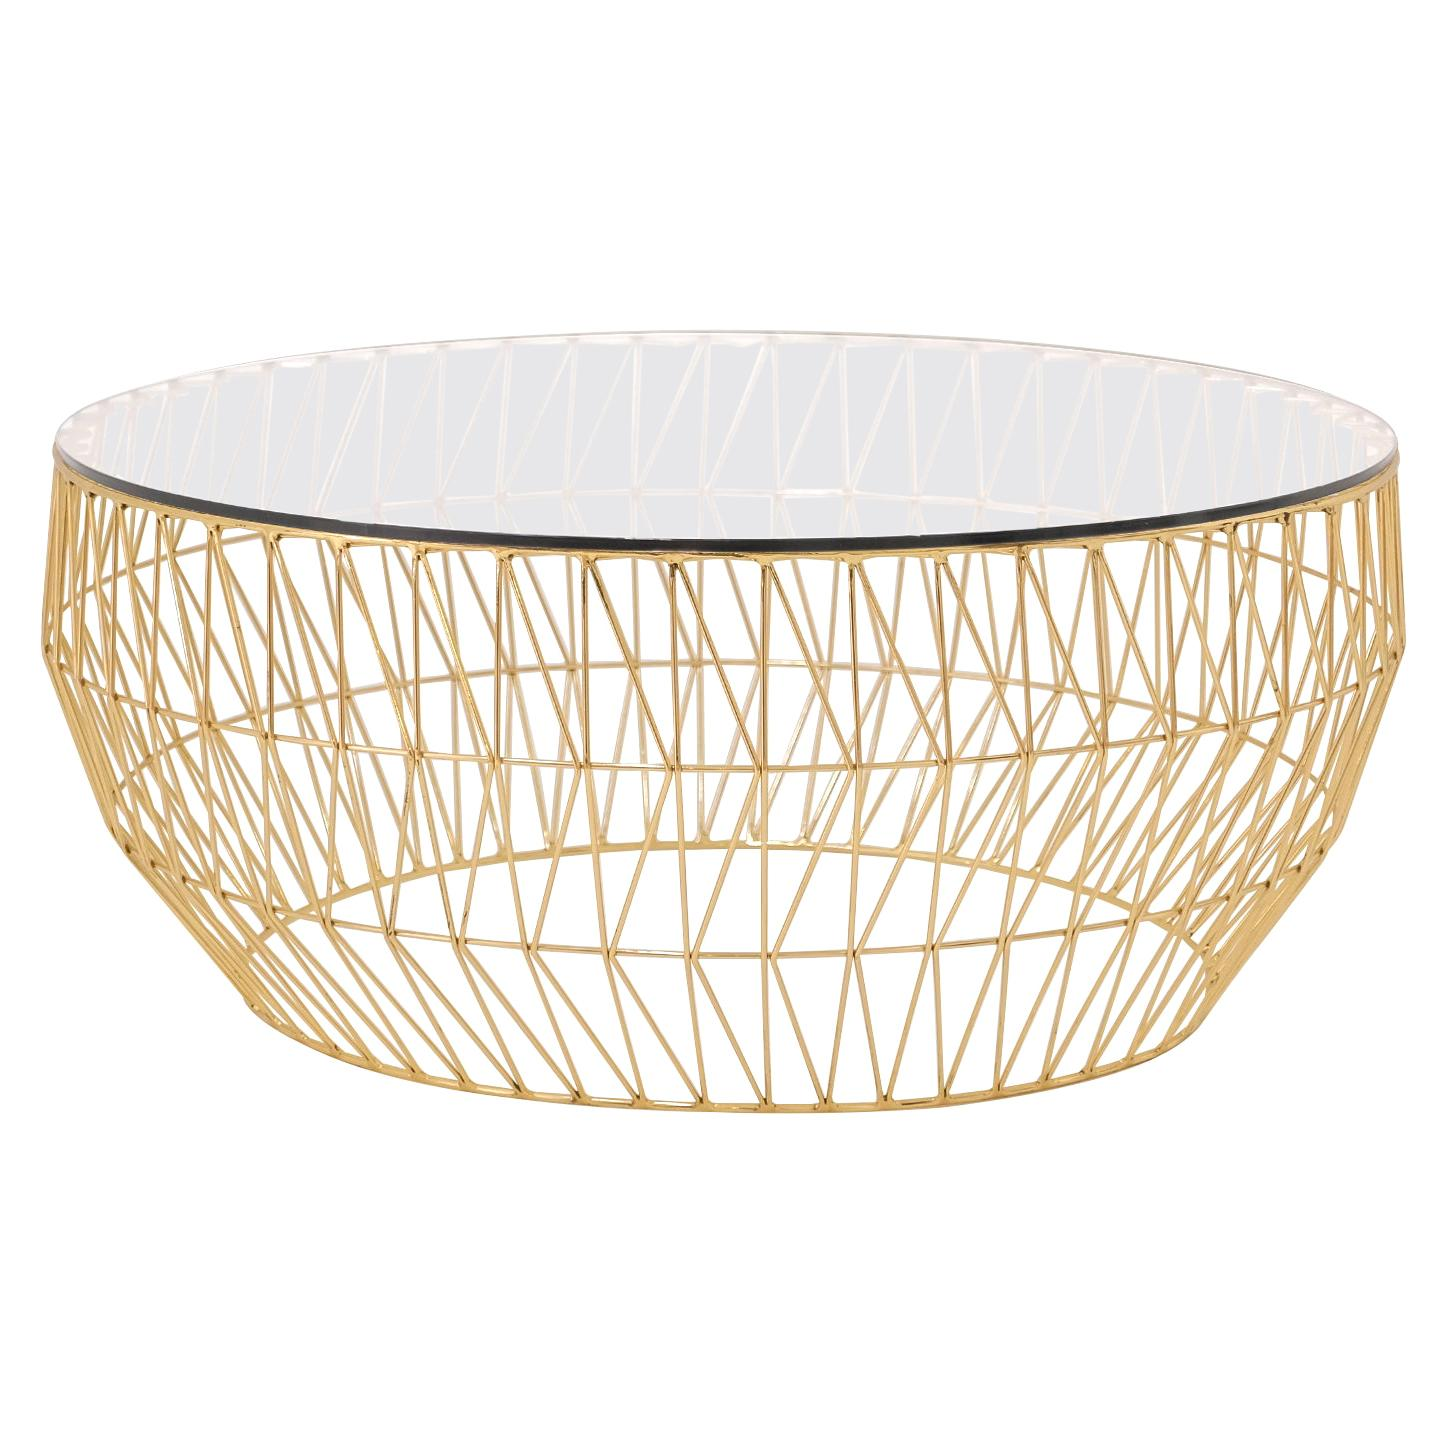 Minimalist Coffee Table, Wire Center Table in Gold with Clear Glass